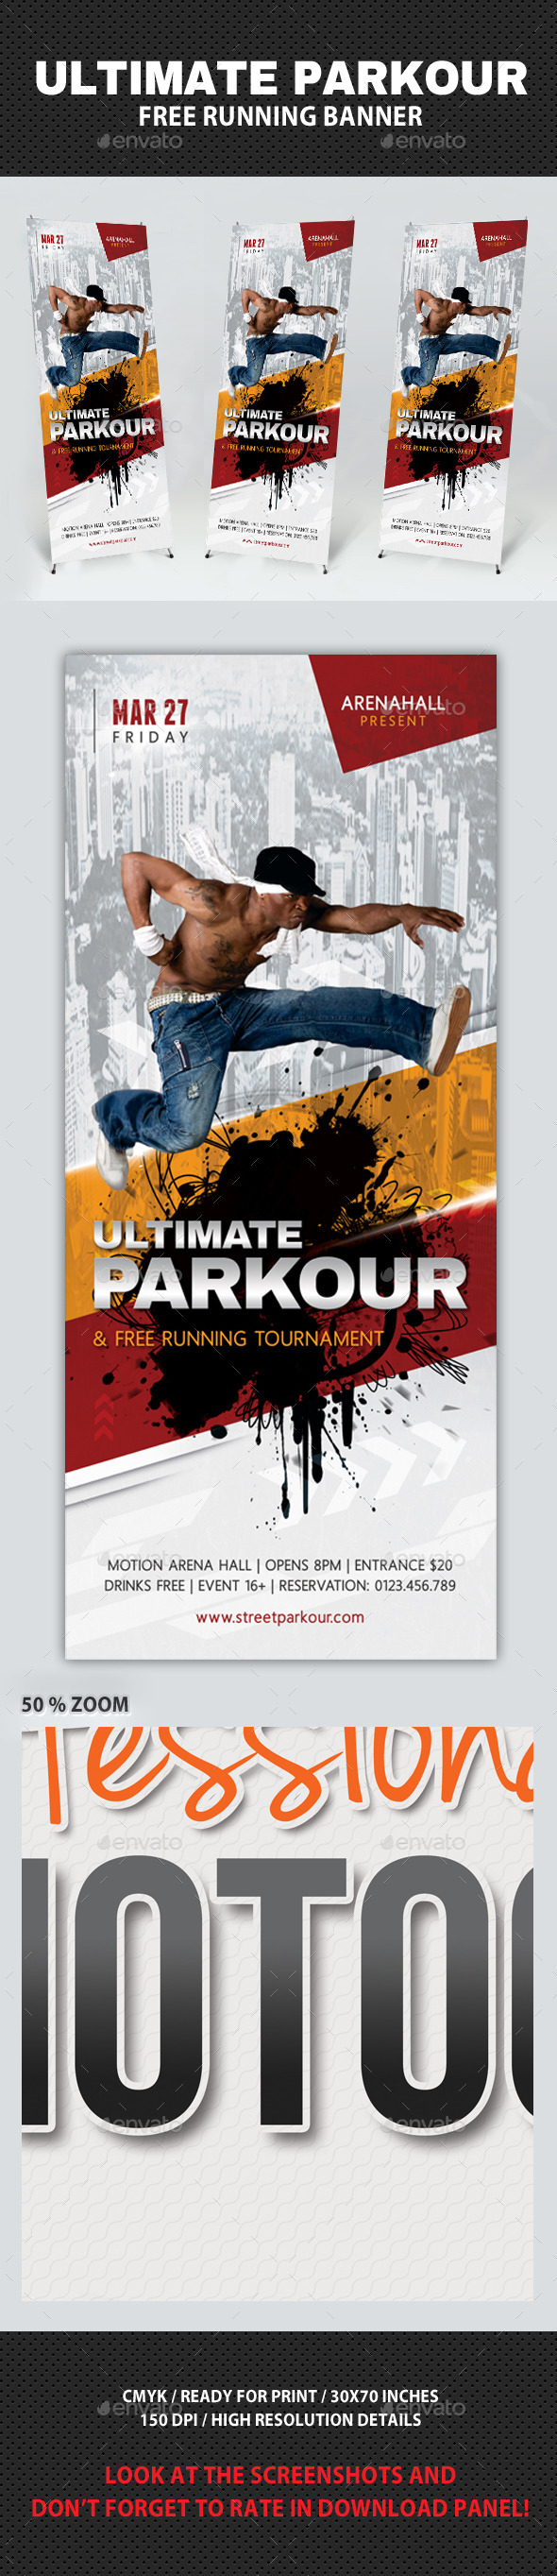 GraphicRiver Ultimate Parkour Free Running Banner 10557371